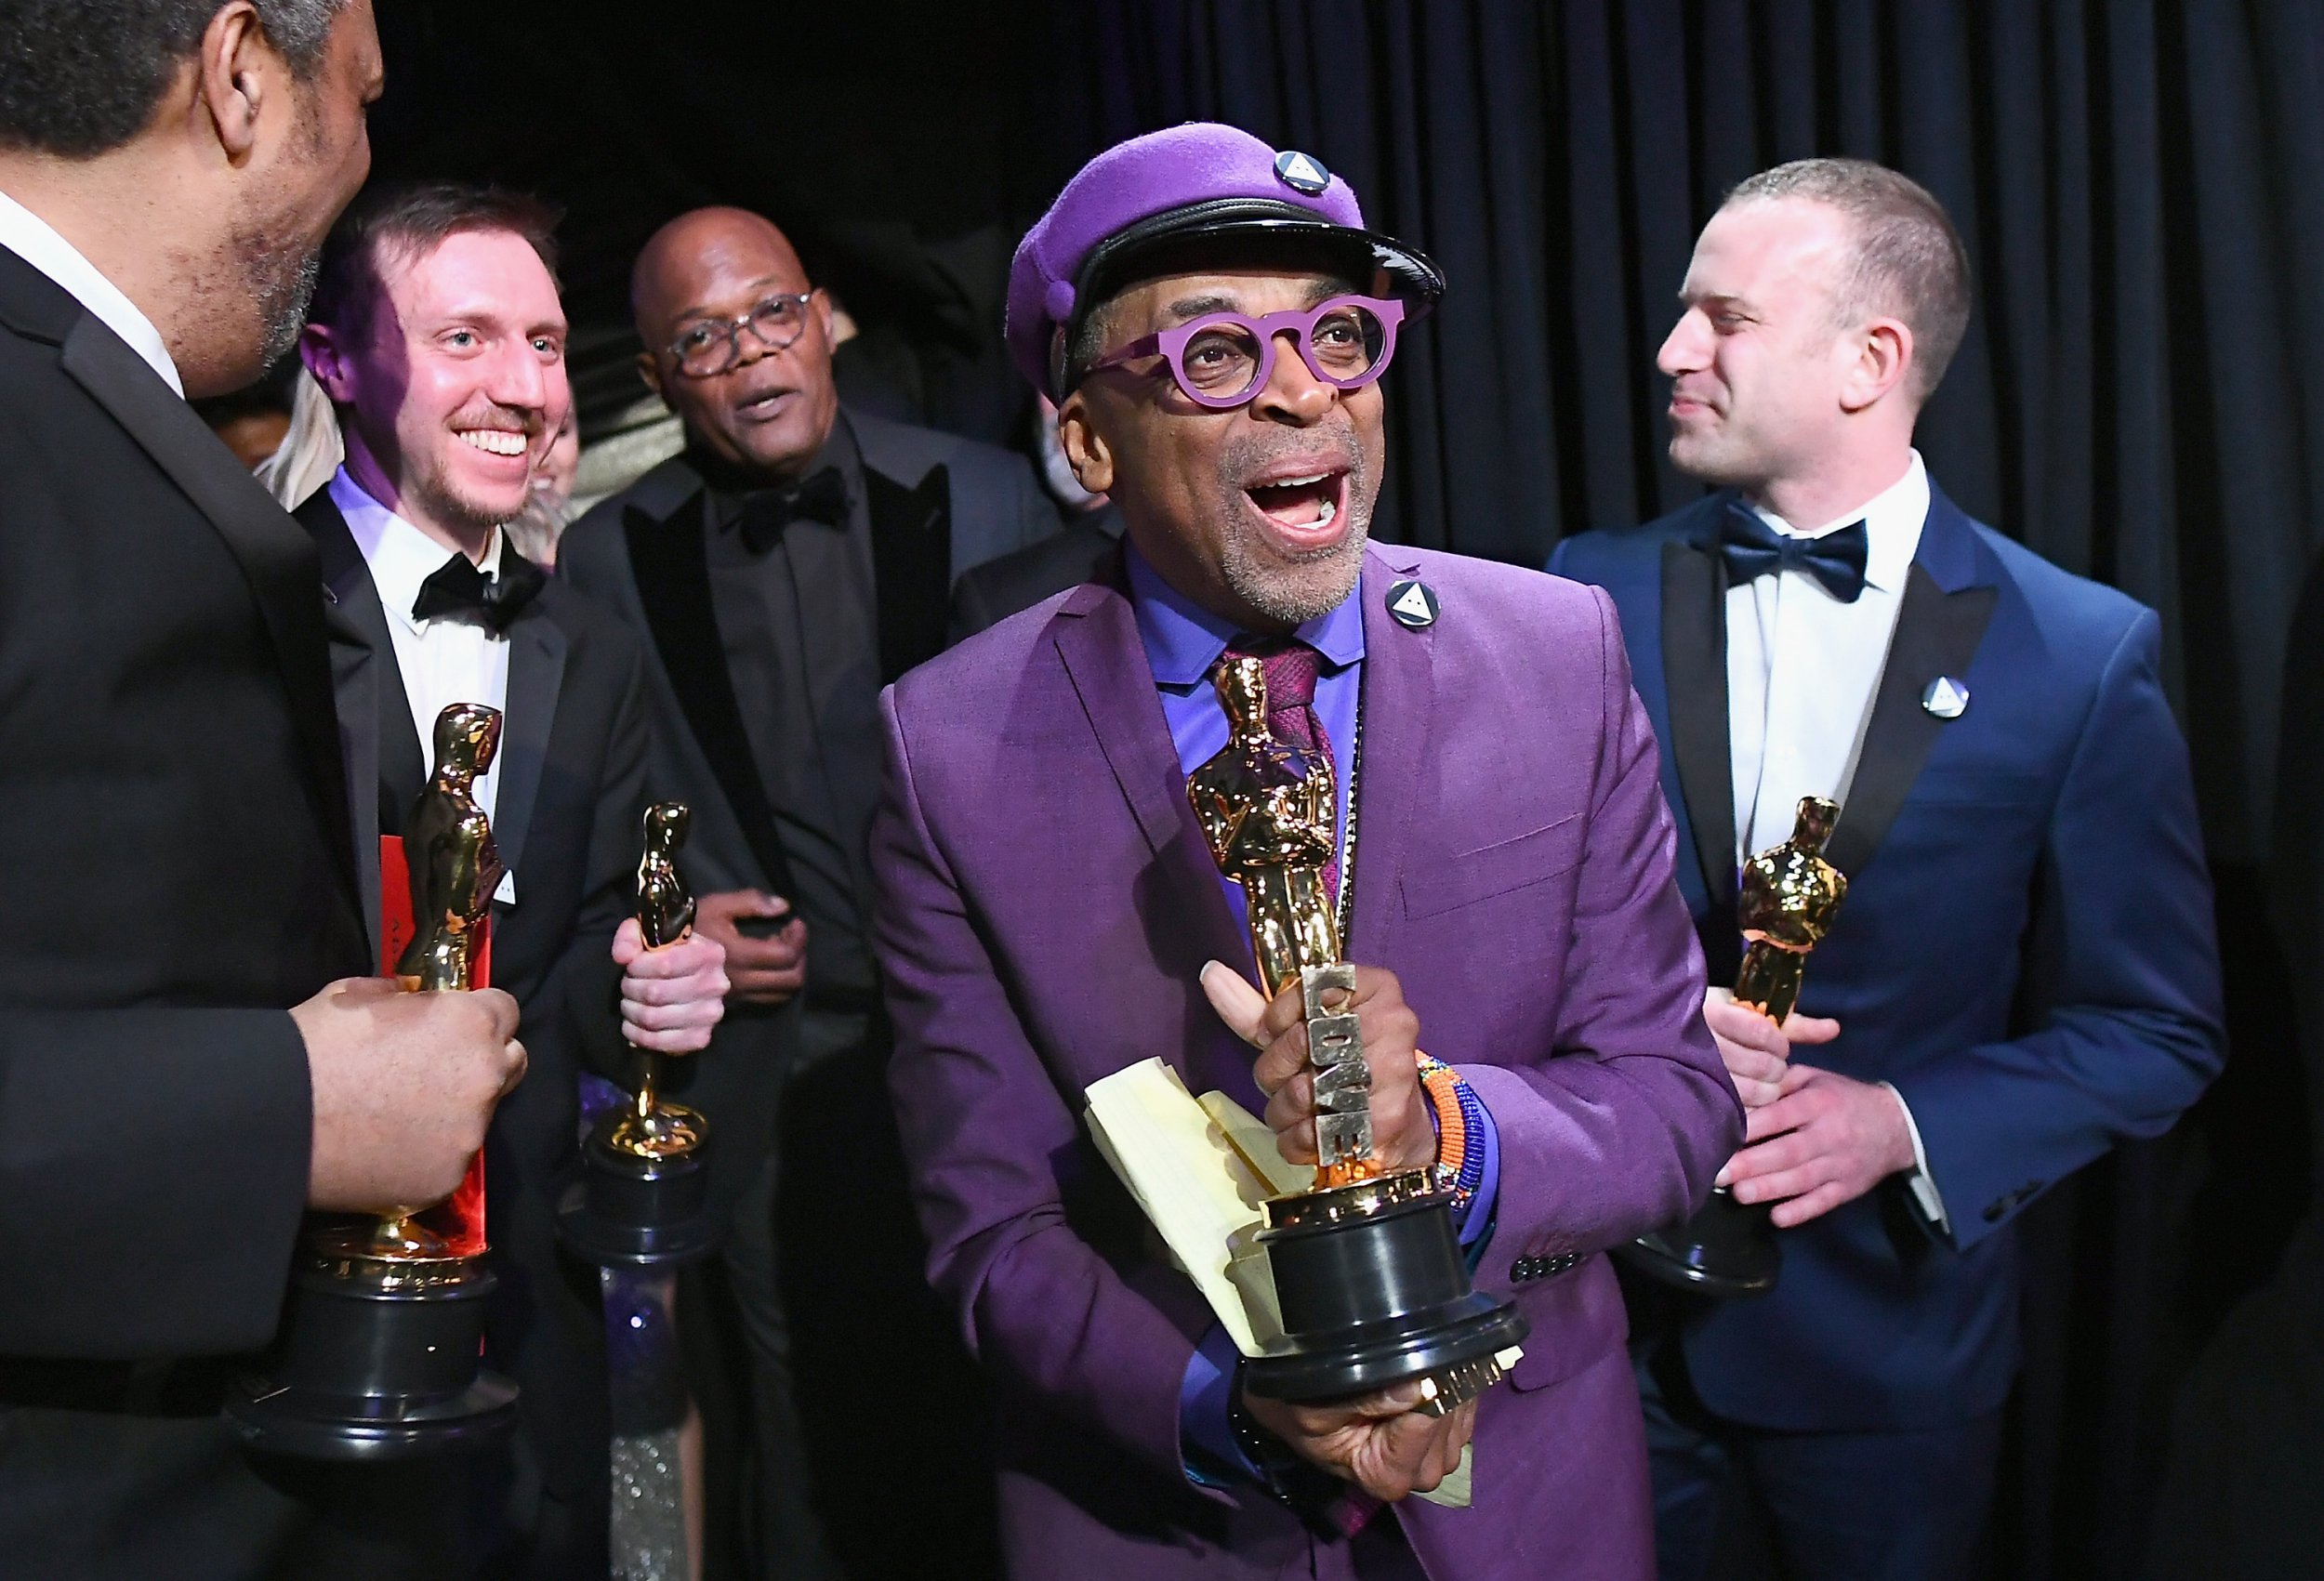 Spike Lee was extremely last minute with his Oscars acceptance speech and actually wrote it backstage